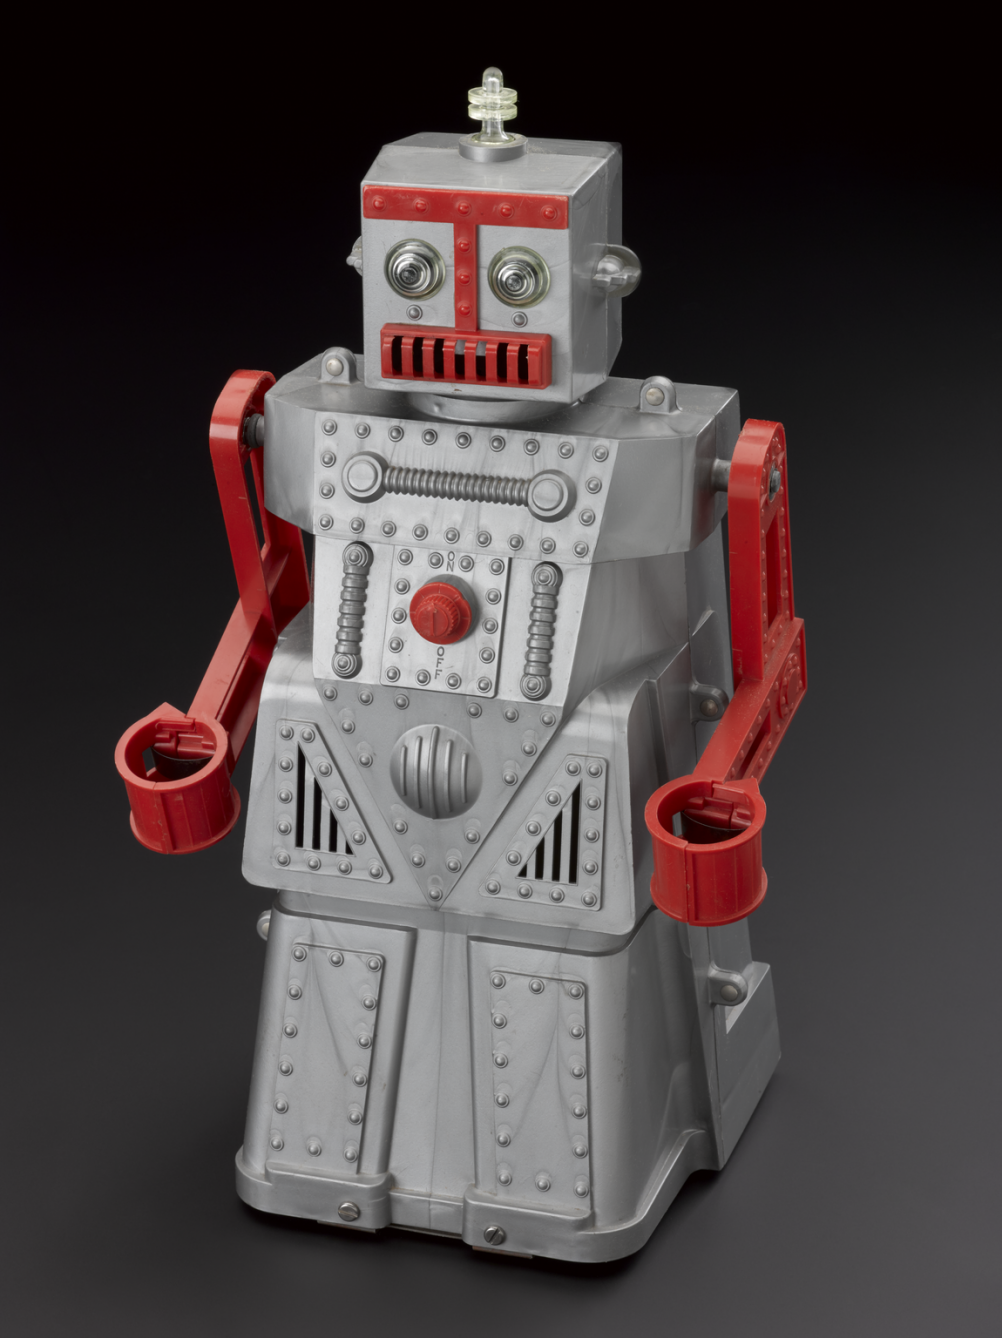 Robert the Robot, 1955, U.S.A.